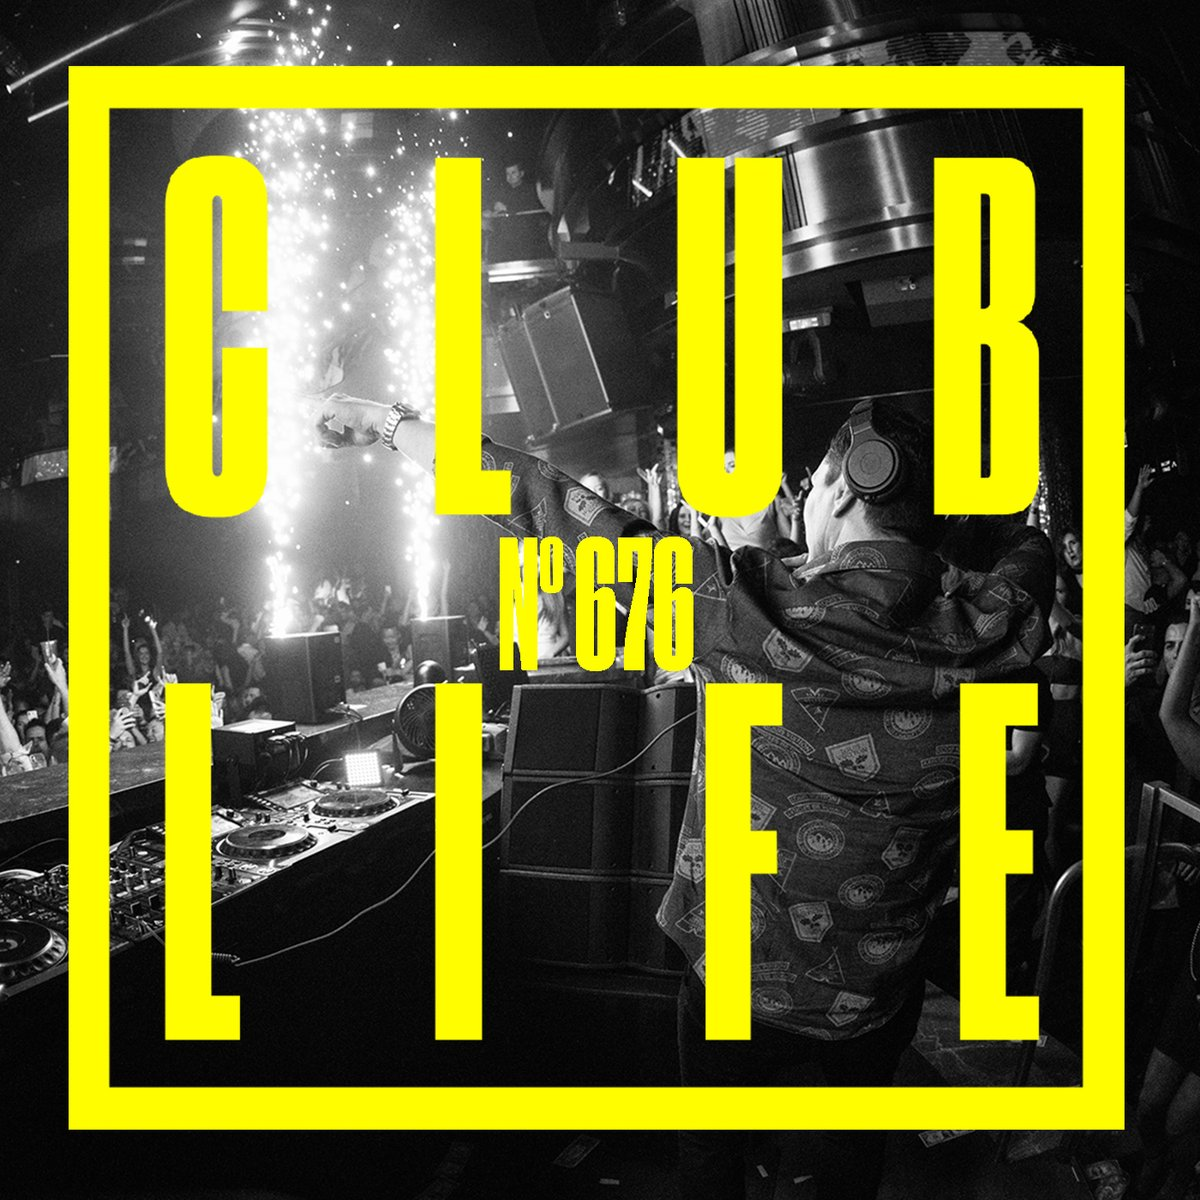 Episode 676 of CLUBLIFE is available now on @YouTube and @SoundCloud 🎶🎶 tsto.co/clublife676